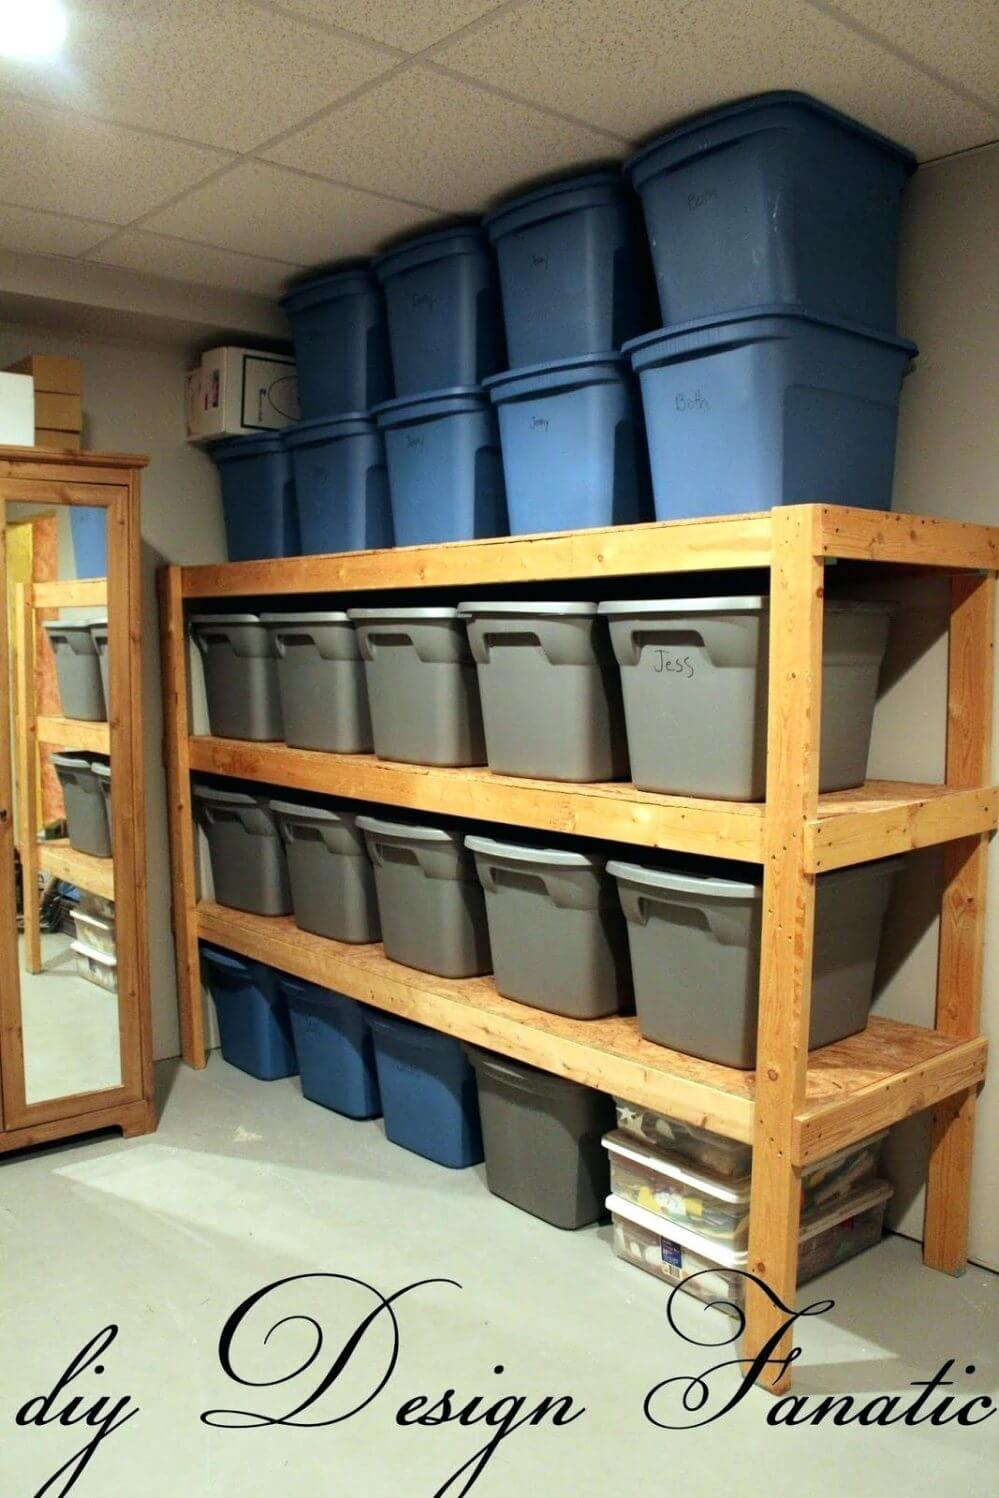 Garage Organization Ideas with Bins